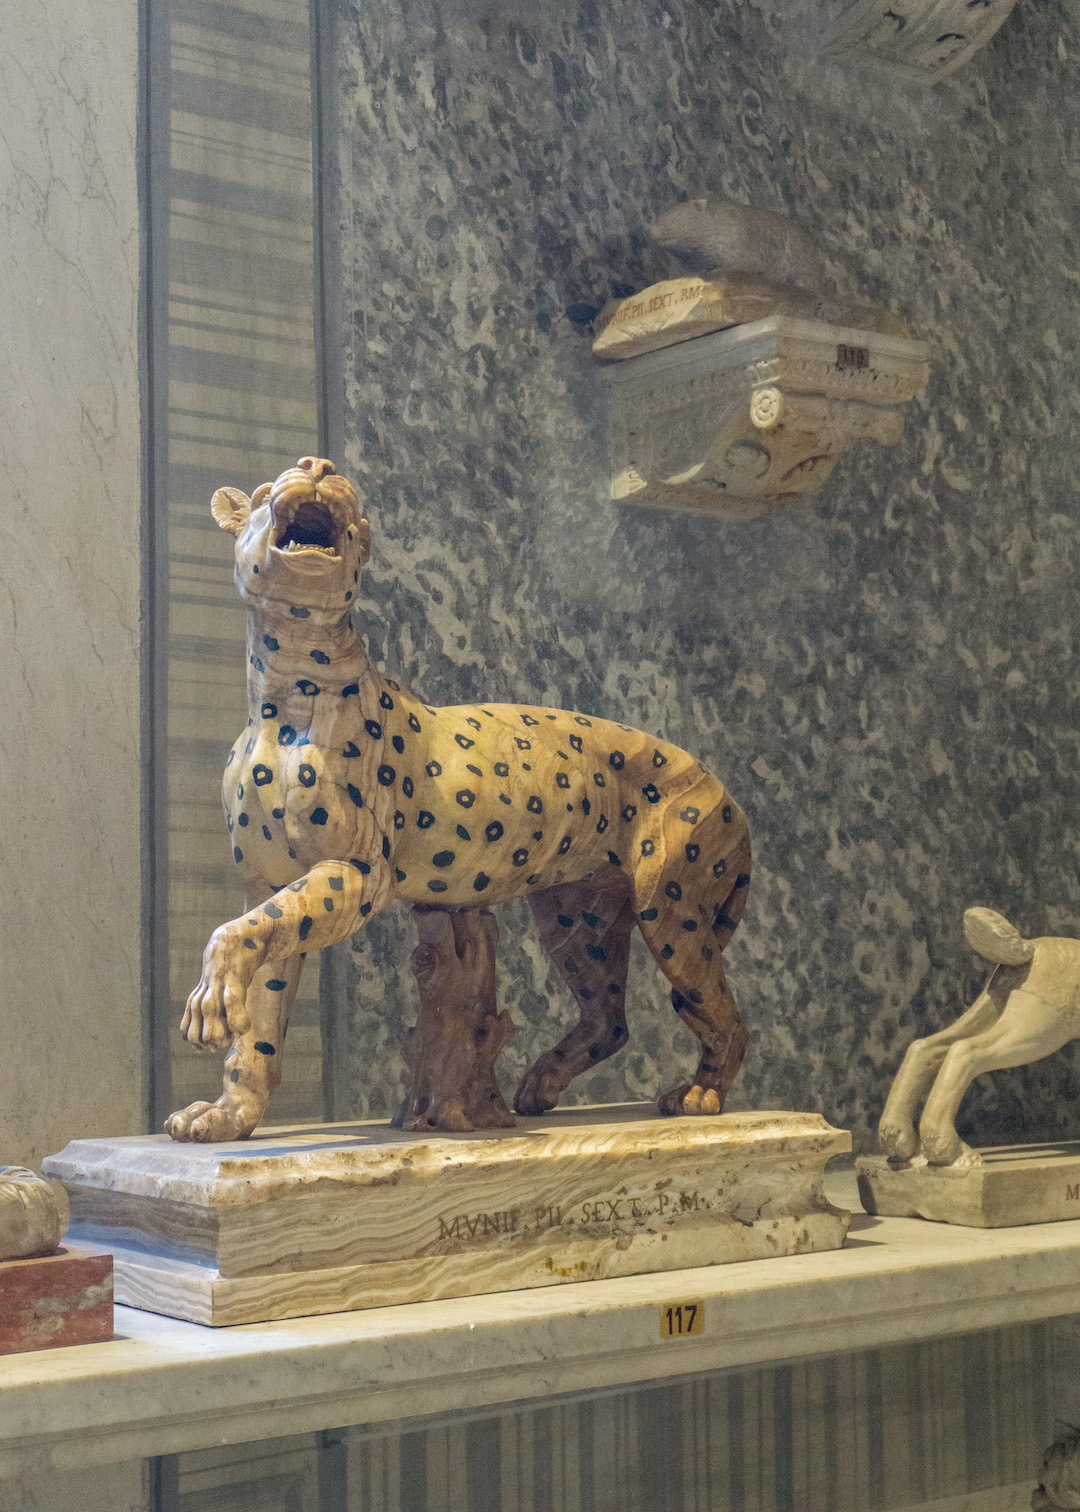 Spotted Leopard Statue in the Vatican